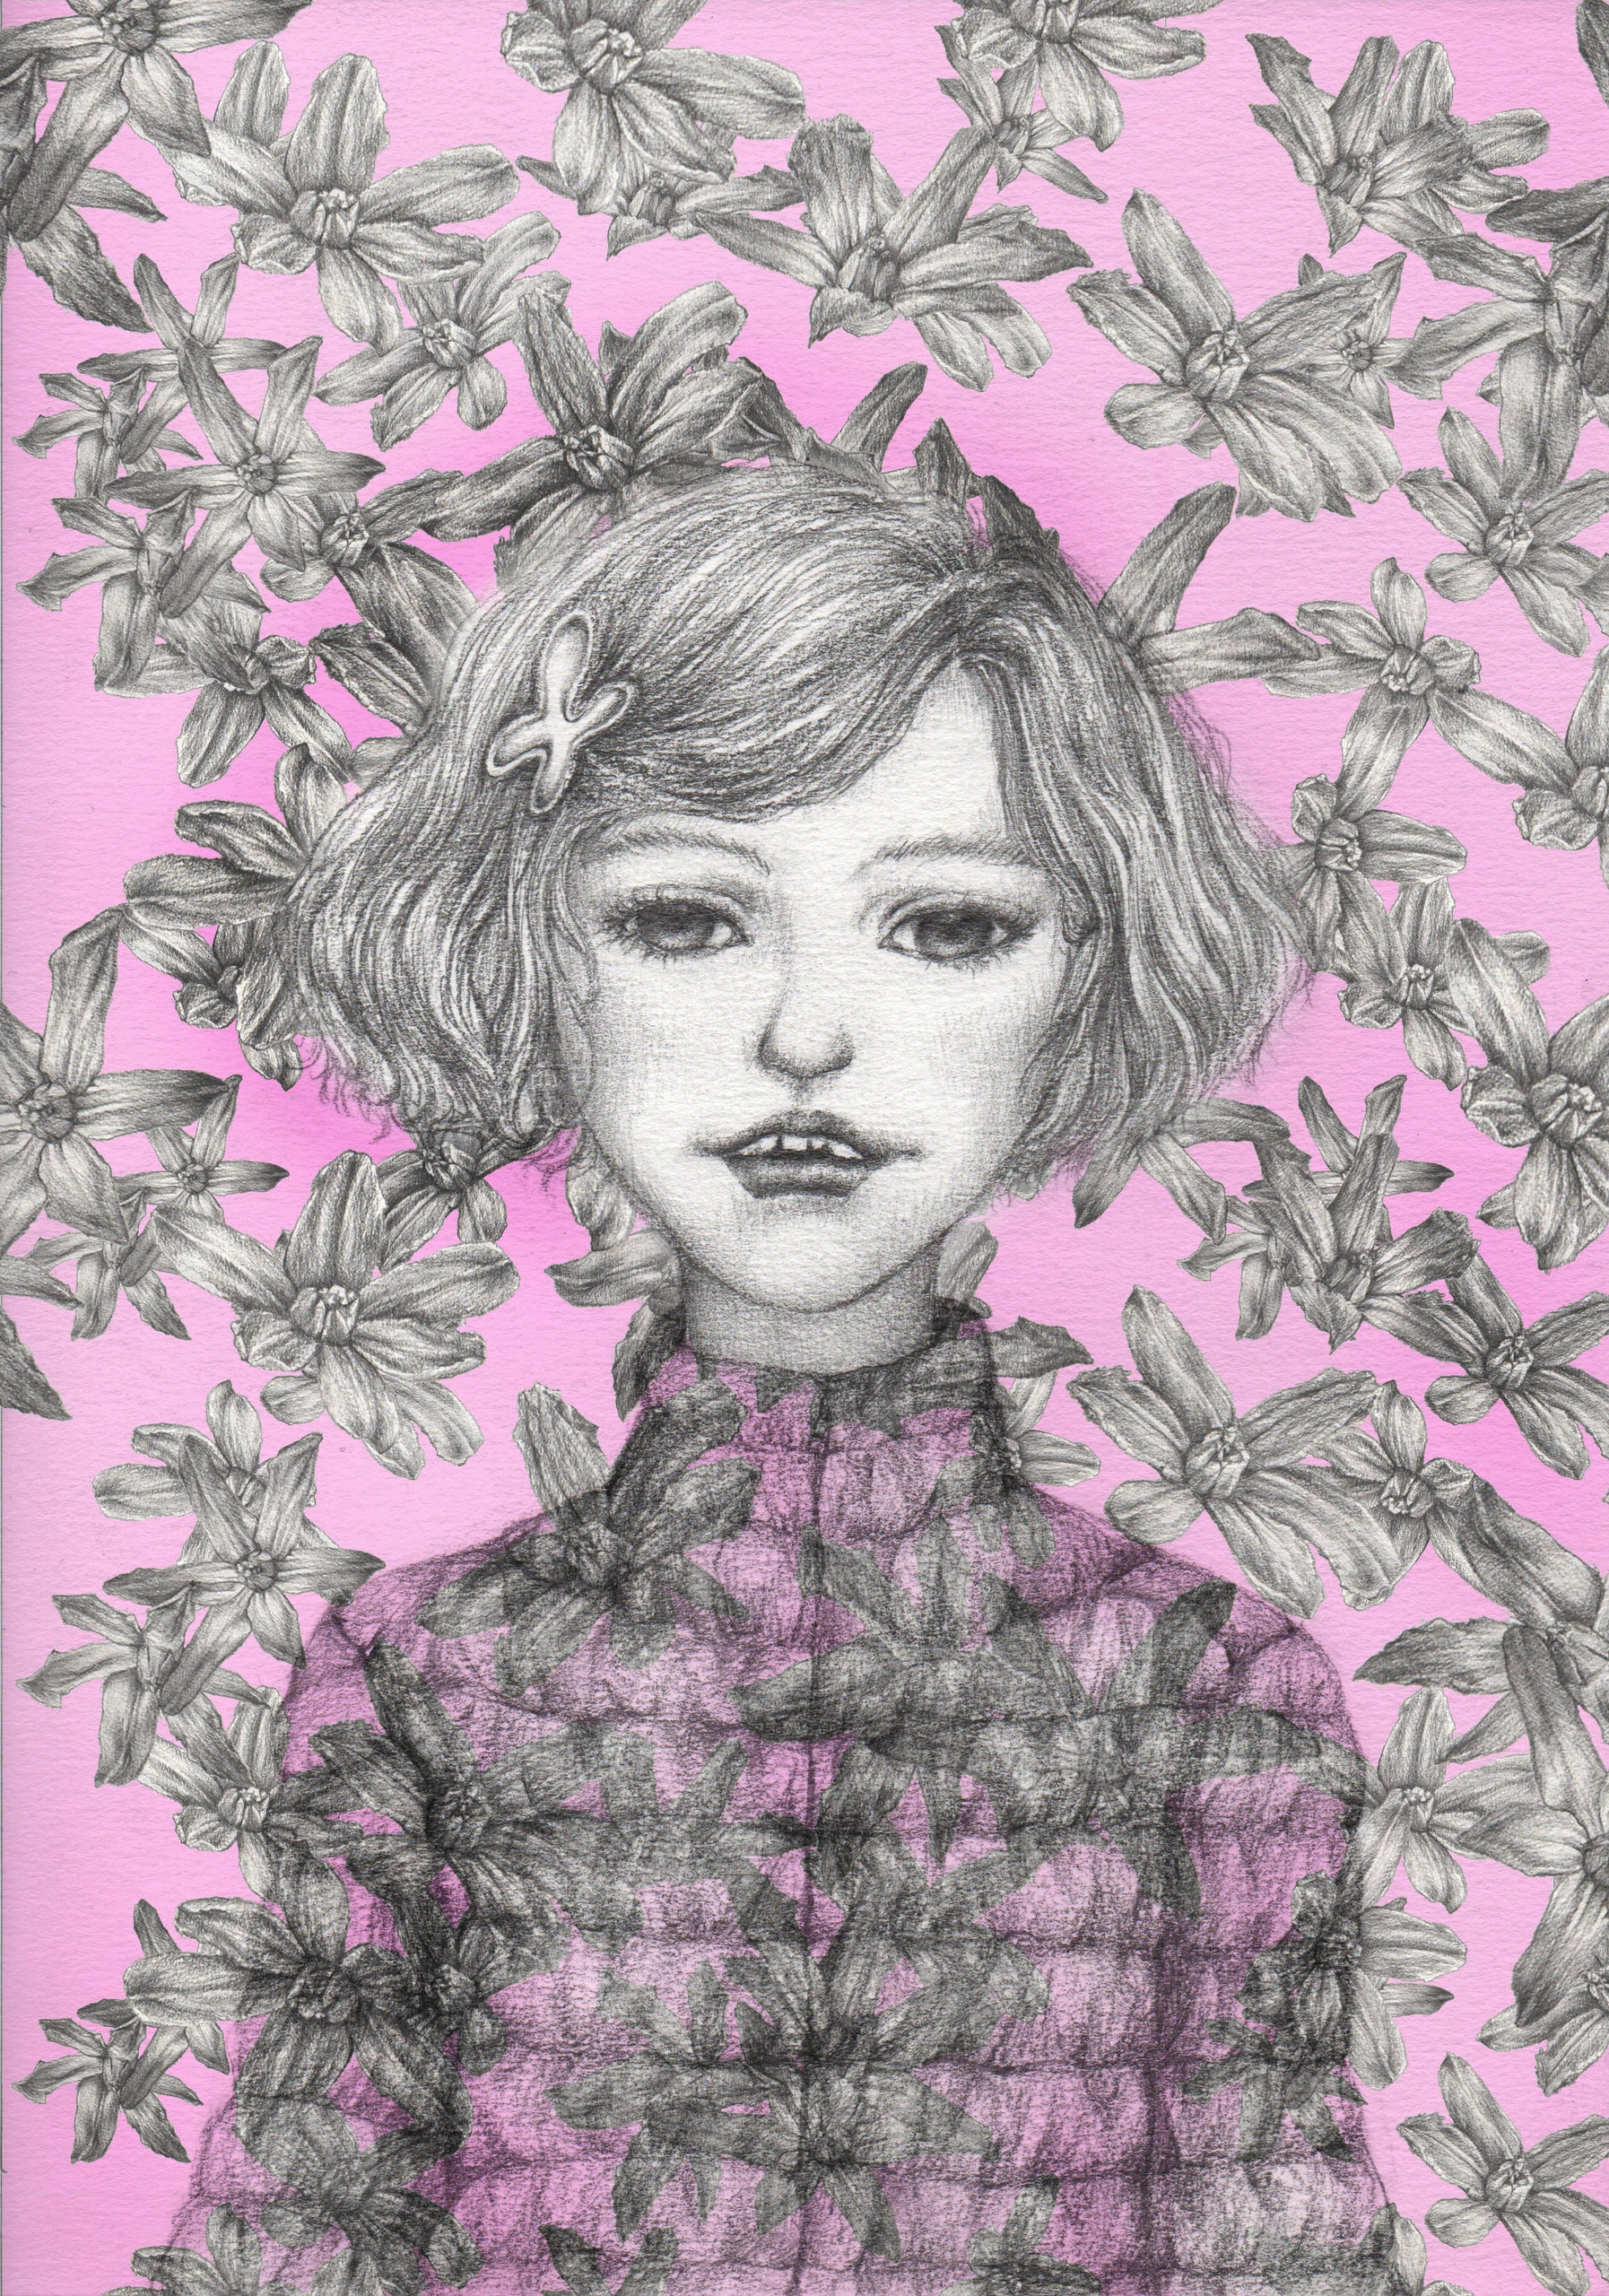 world - illustration, drawing, girl - juichenhu | ello